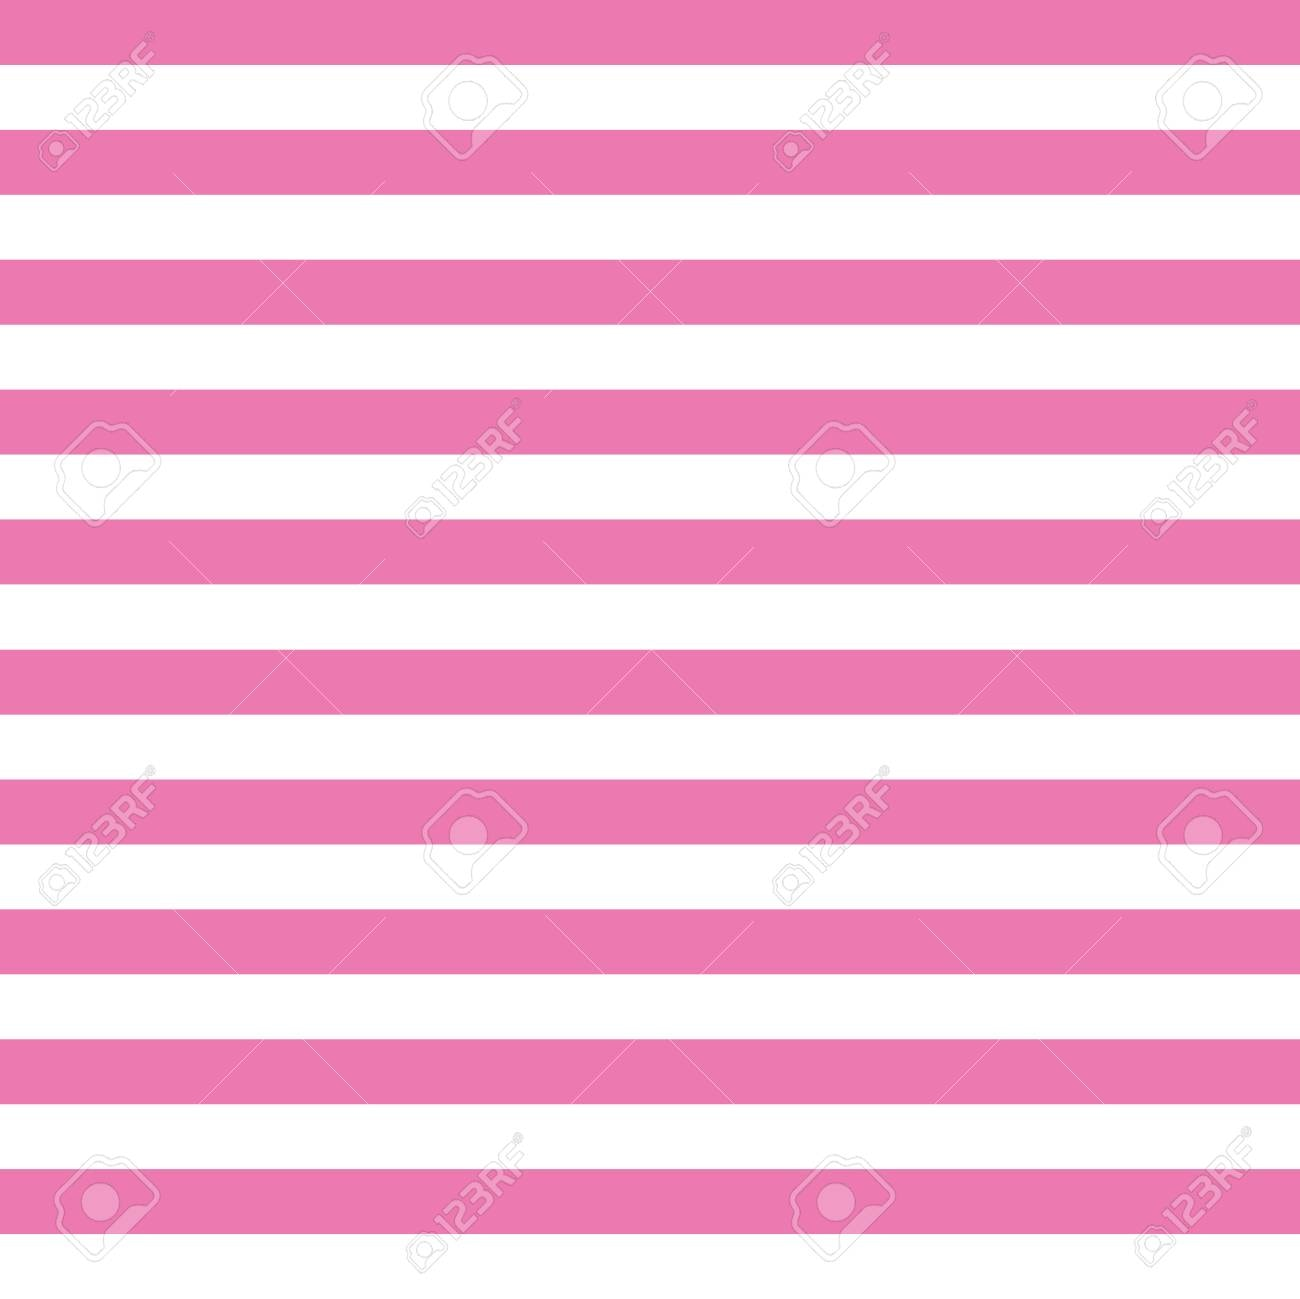 1300x1299 - Background Pink 3